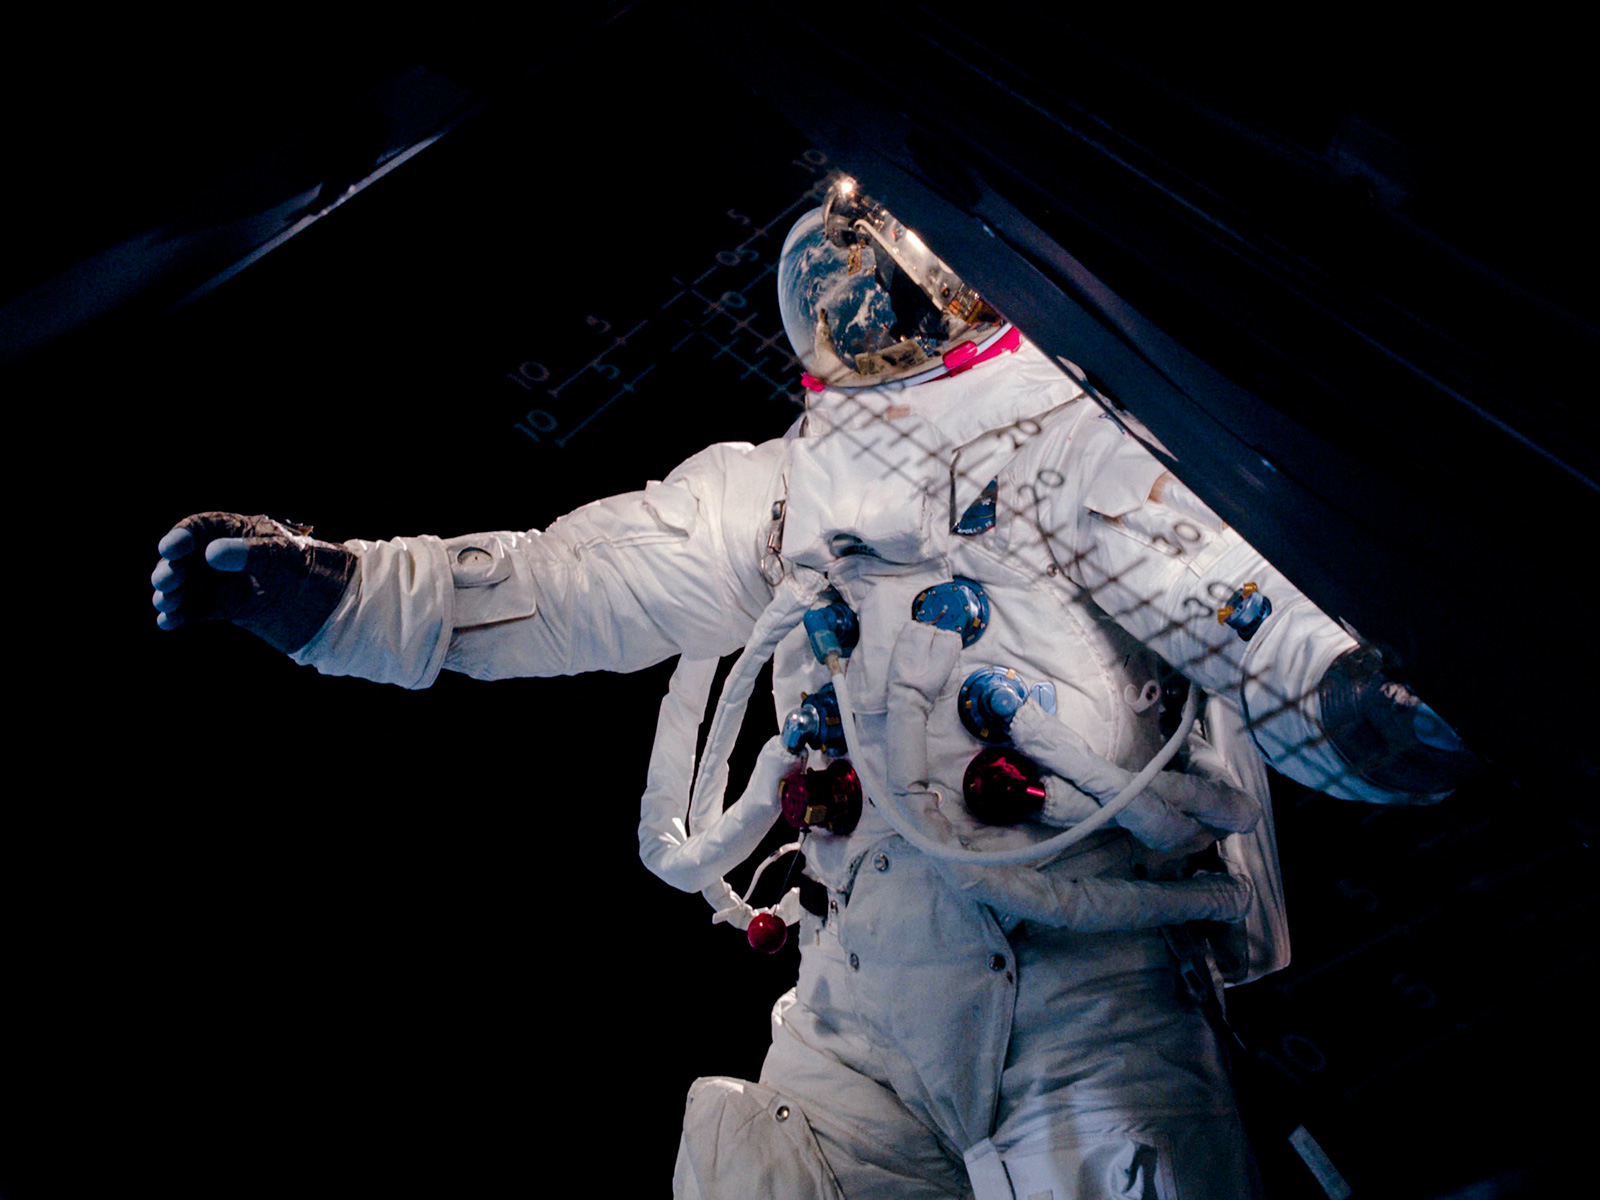 The astronaut - Some of the world's most significant photographers